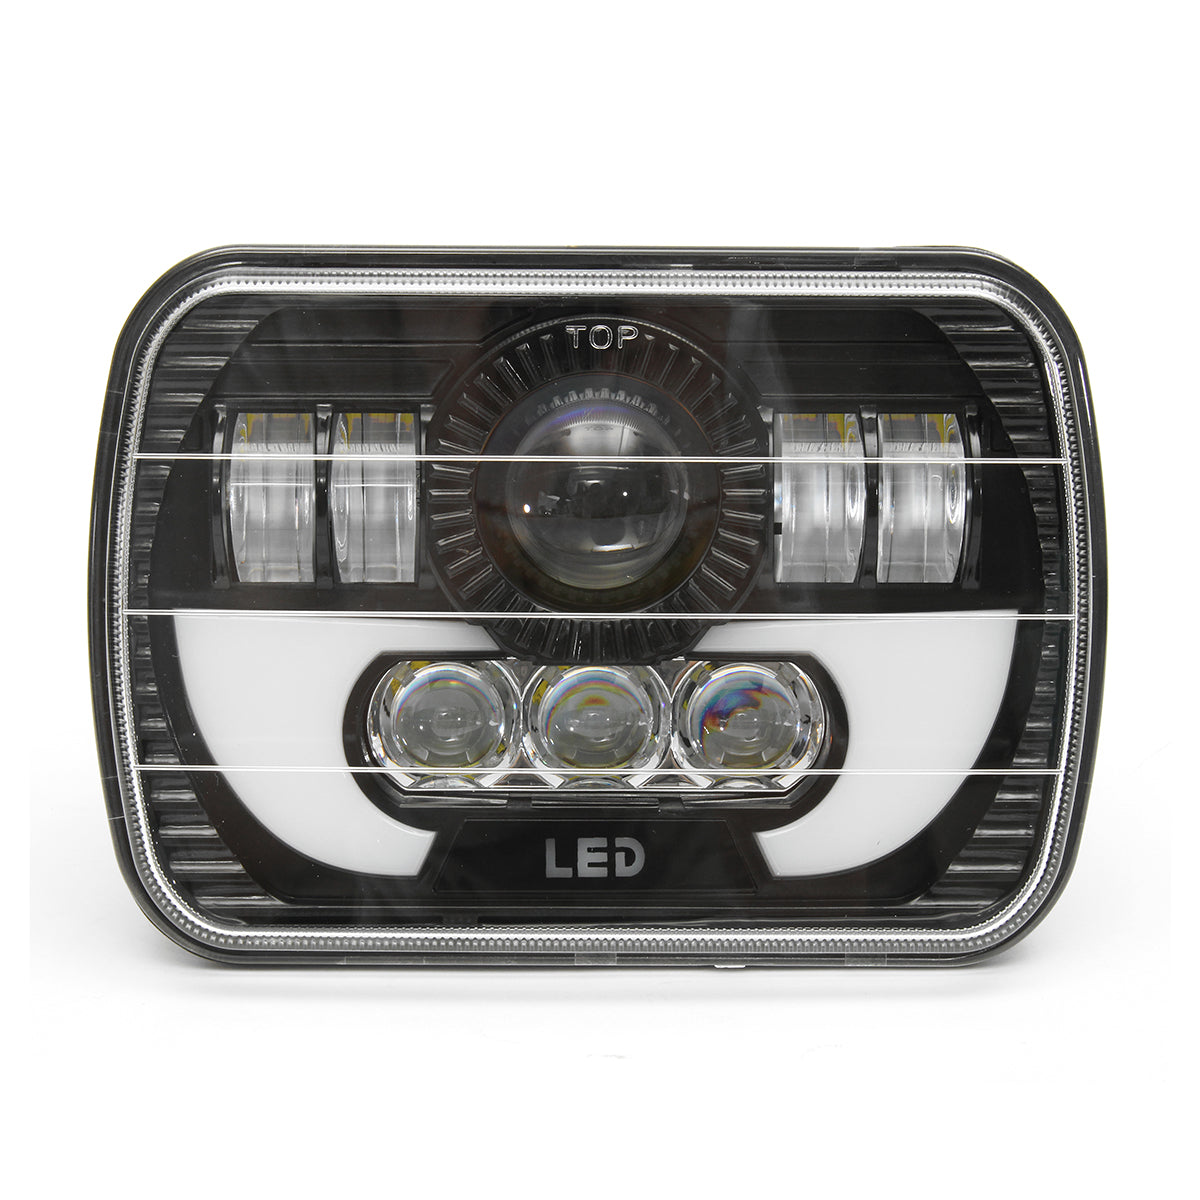 7x5Inch H4 Hi/low Beam Square LED Headlights Lamp DRL Light for Jeep YJ XJ Truck